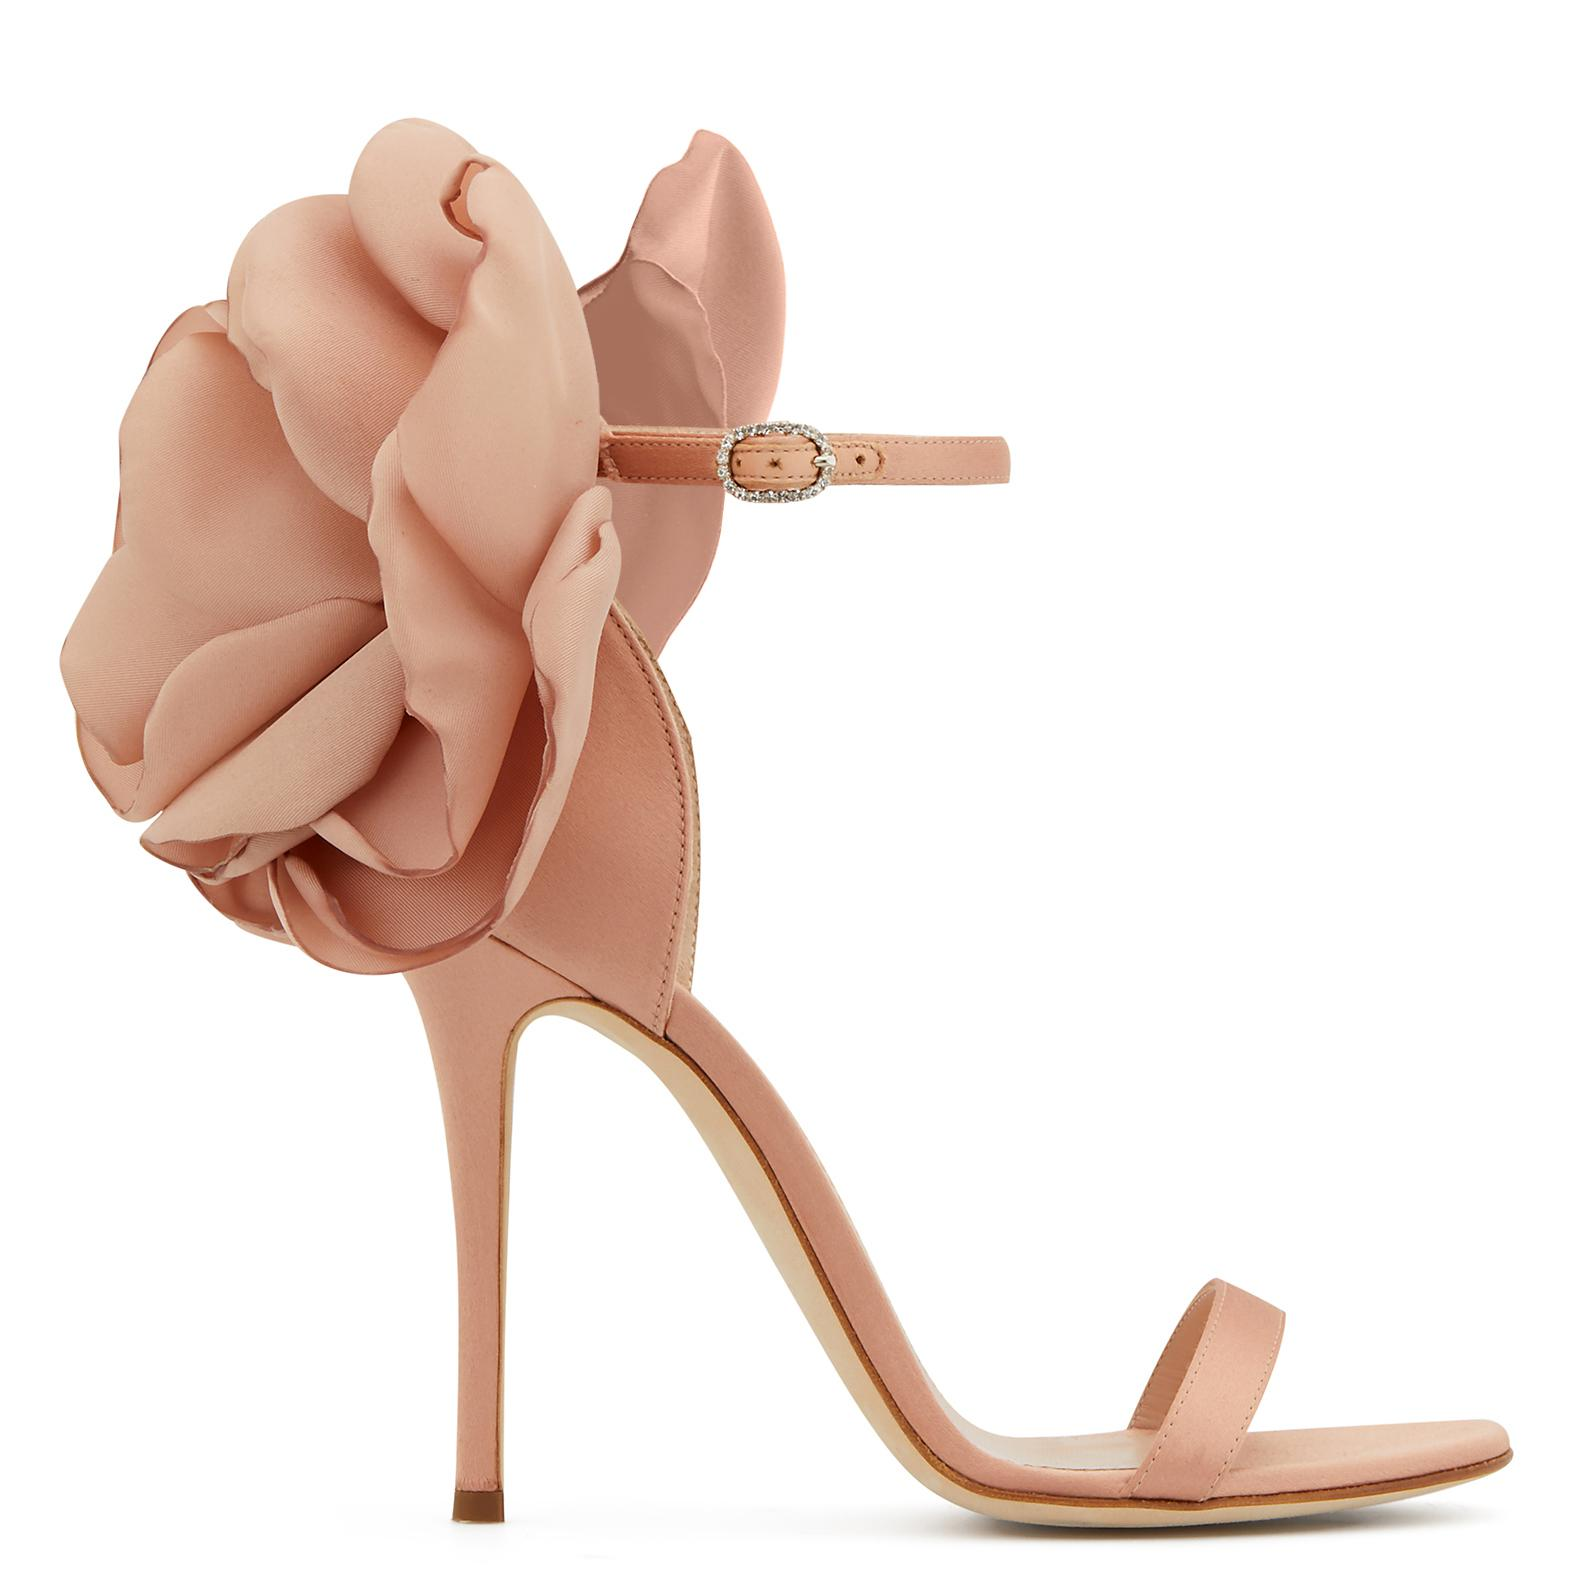 Image result for pelony shoes